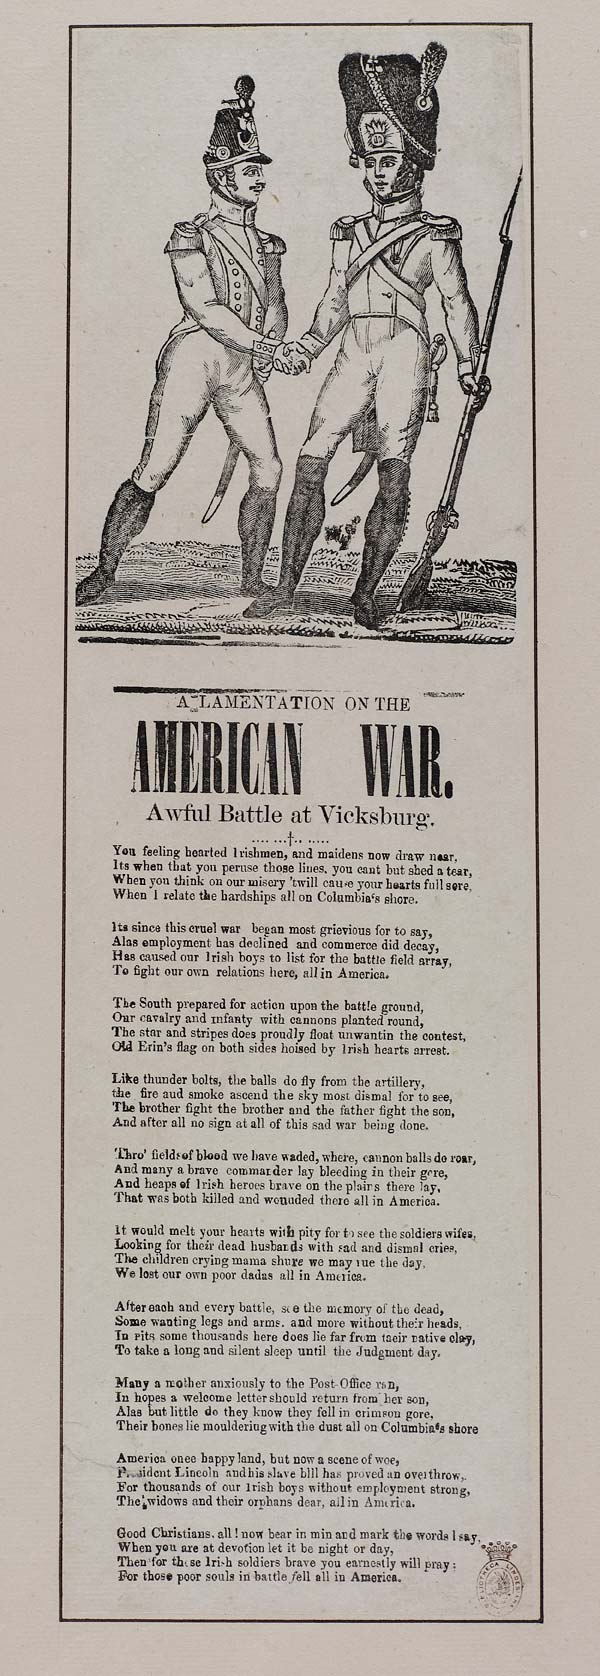 (23) Lamentation on the American war